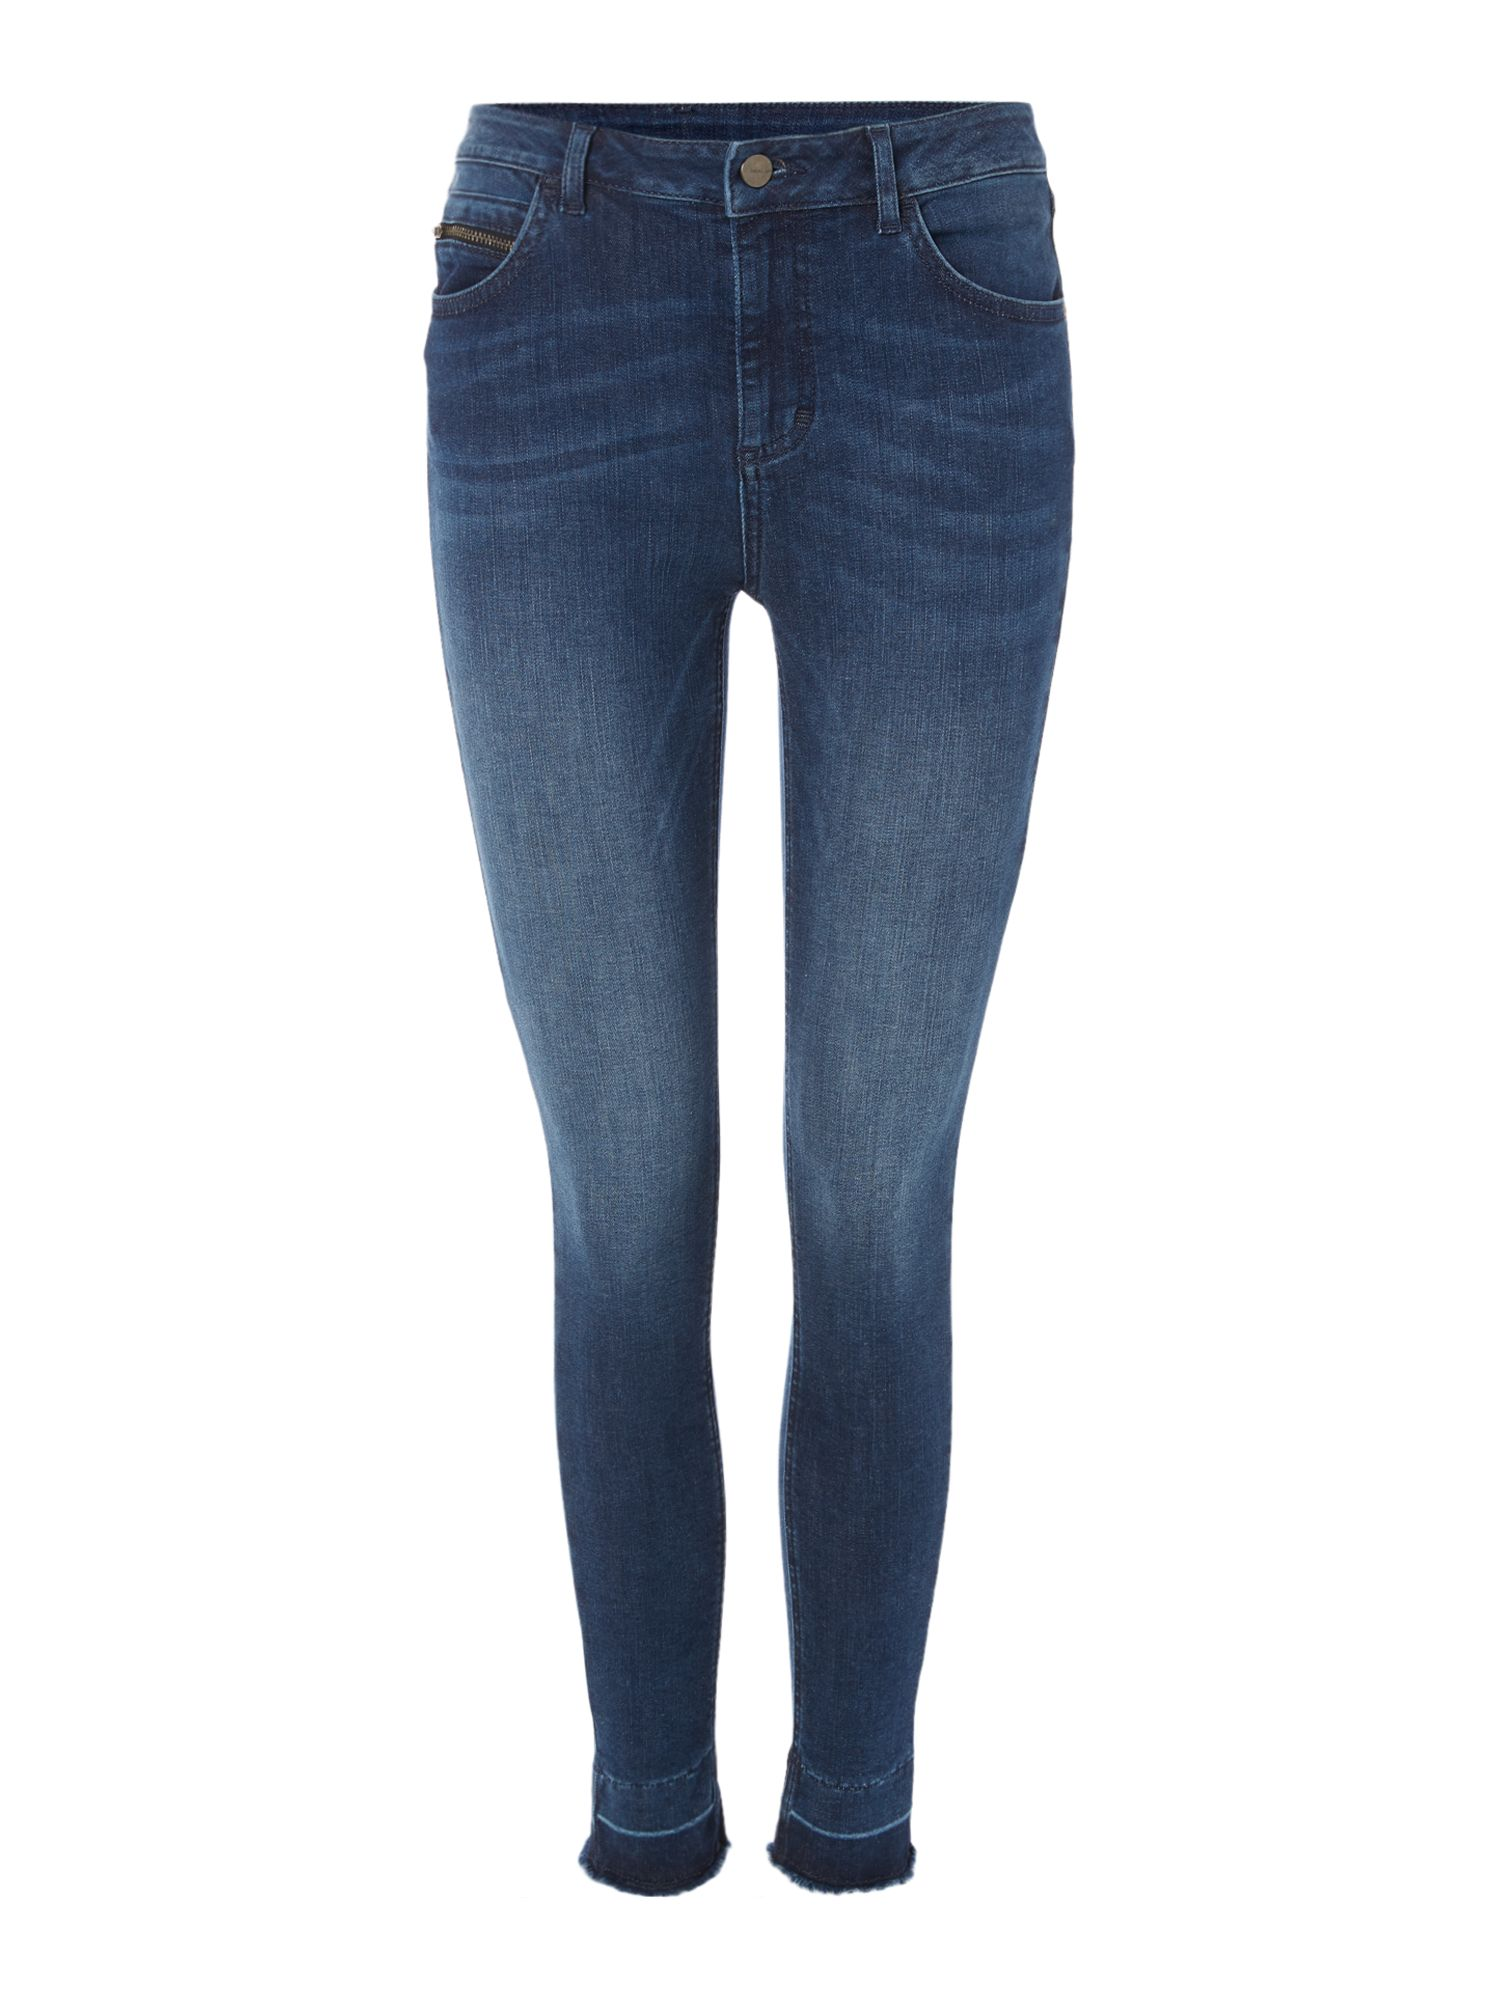 Label Lab Monument Undone Hem Jeans, Indigo